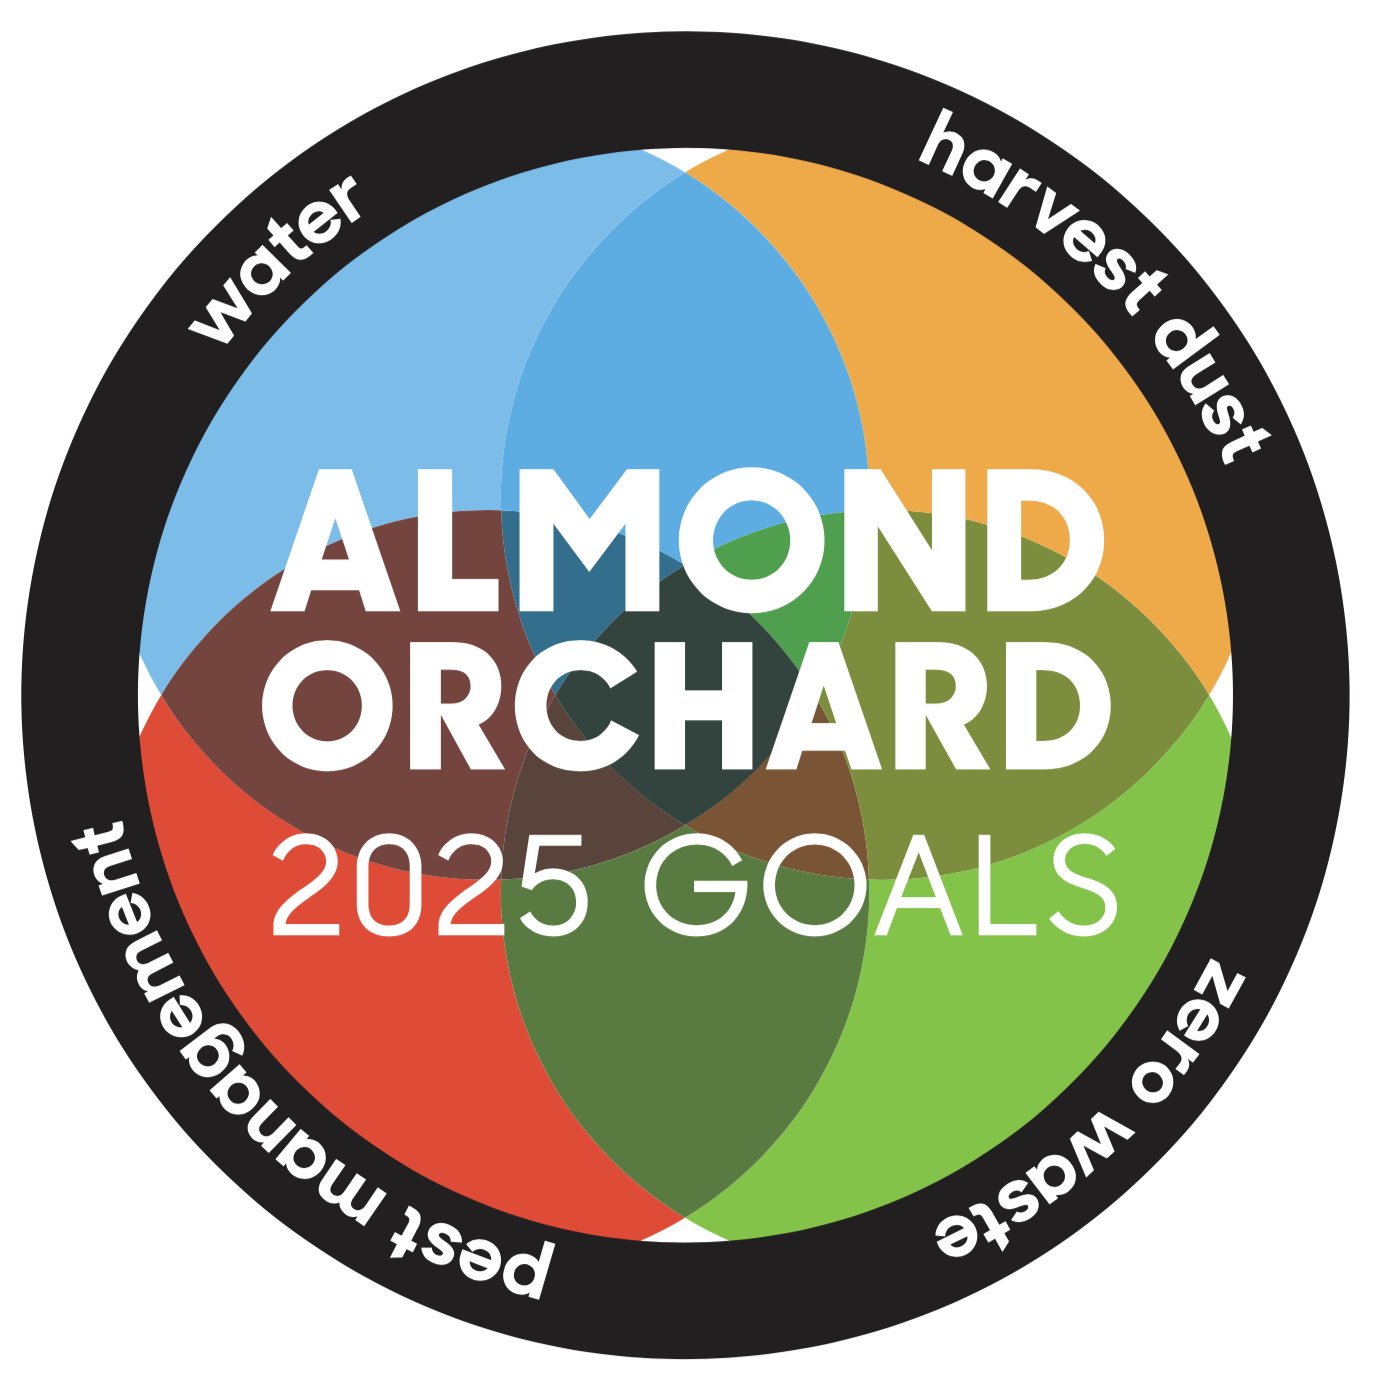 almond orchard 2025 goals